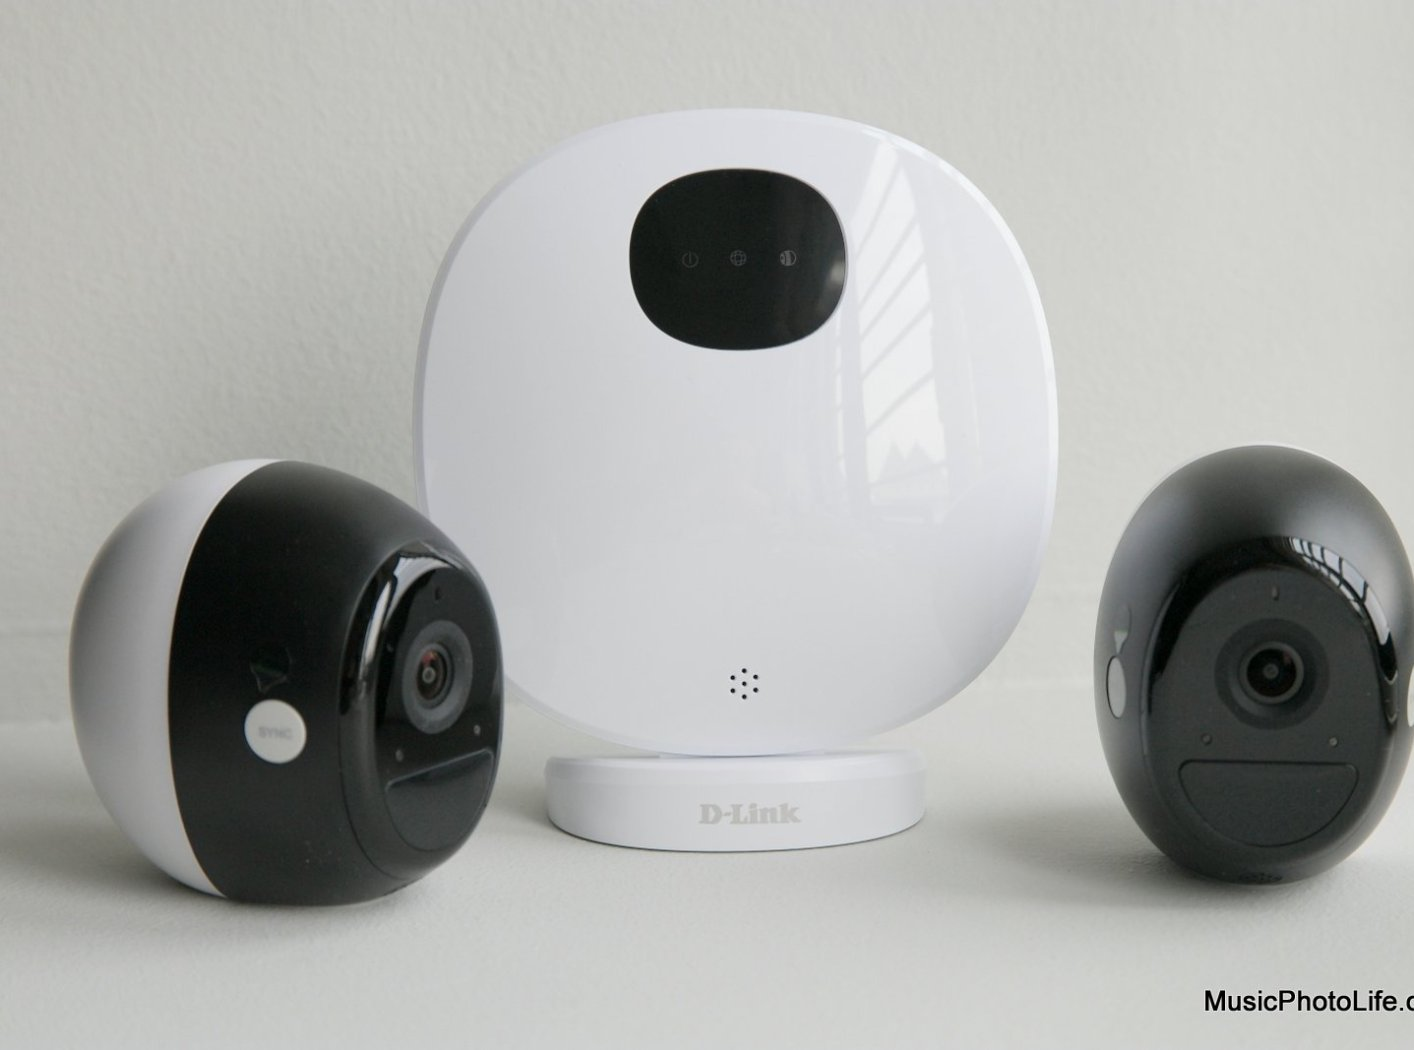 D-Link DCS-2802KT Review: Battery Operated Home Camera So